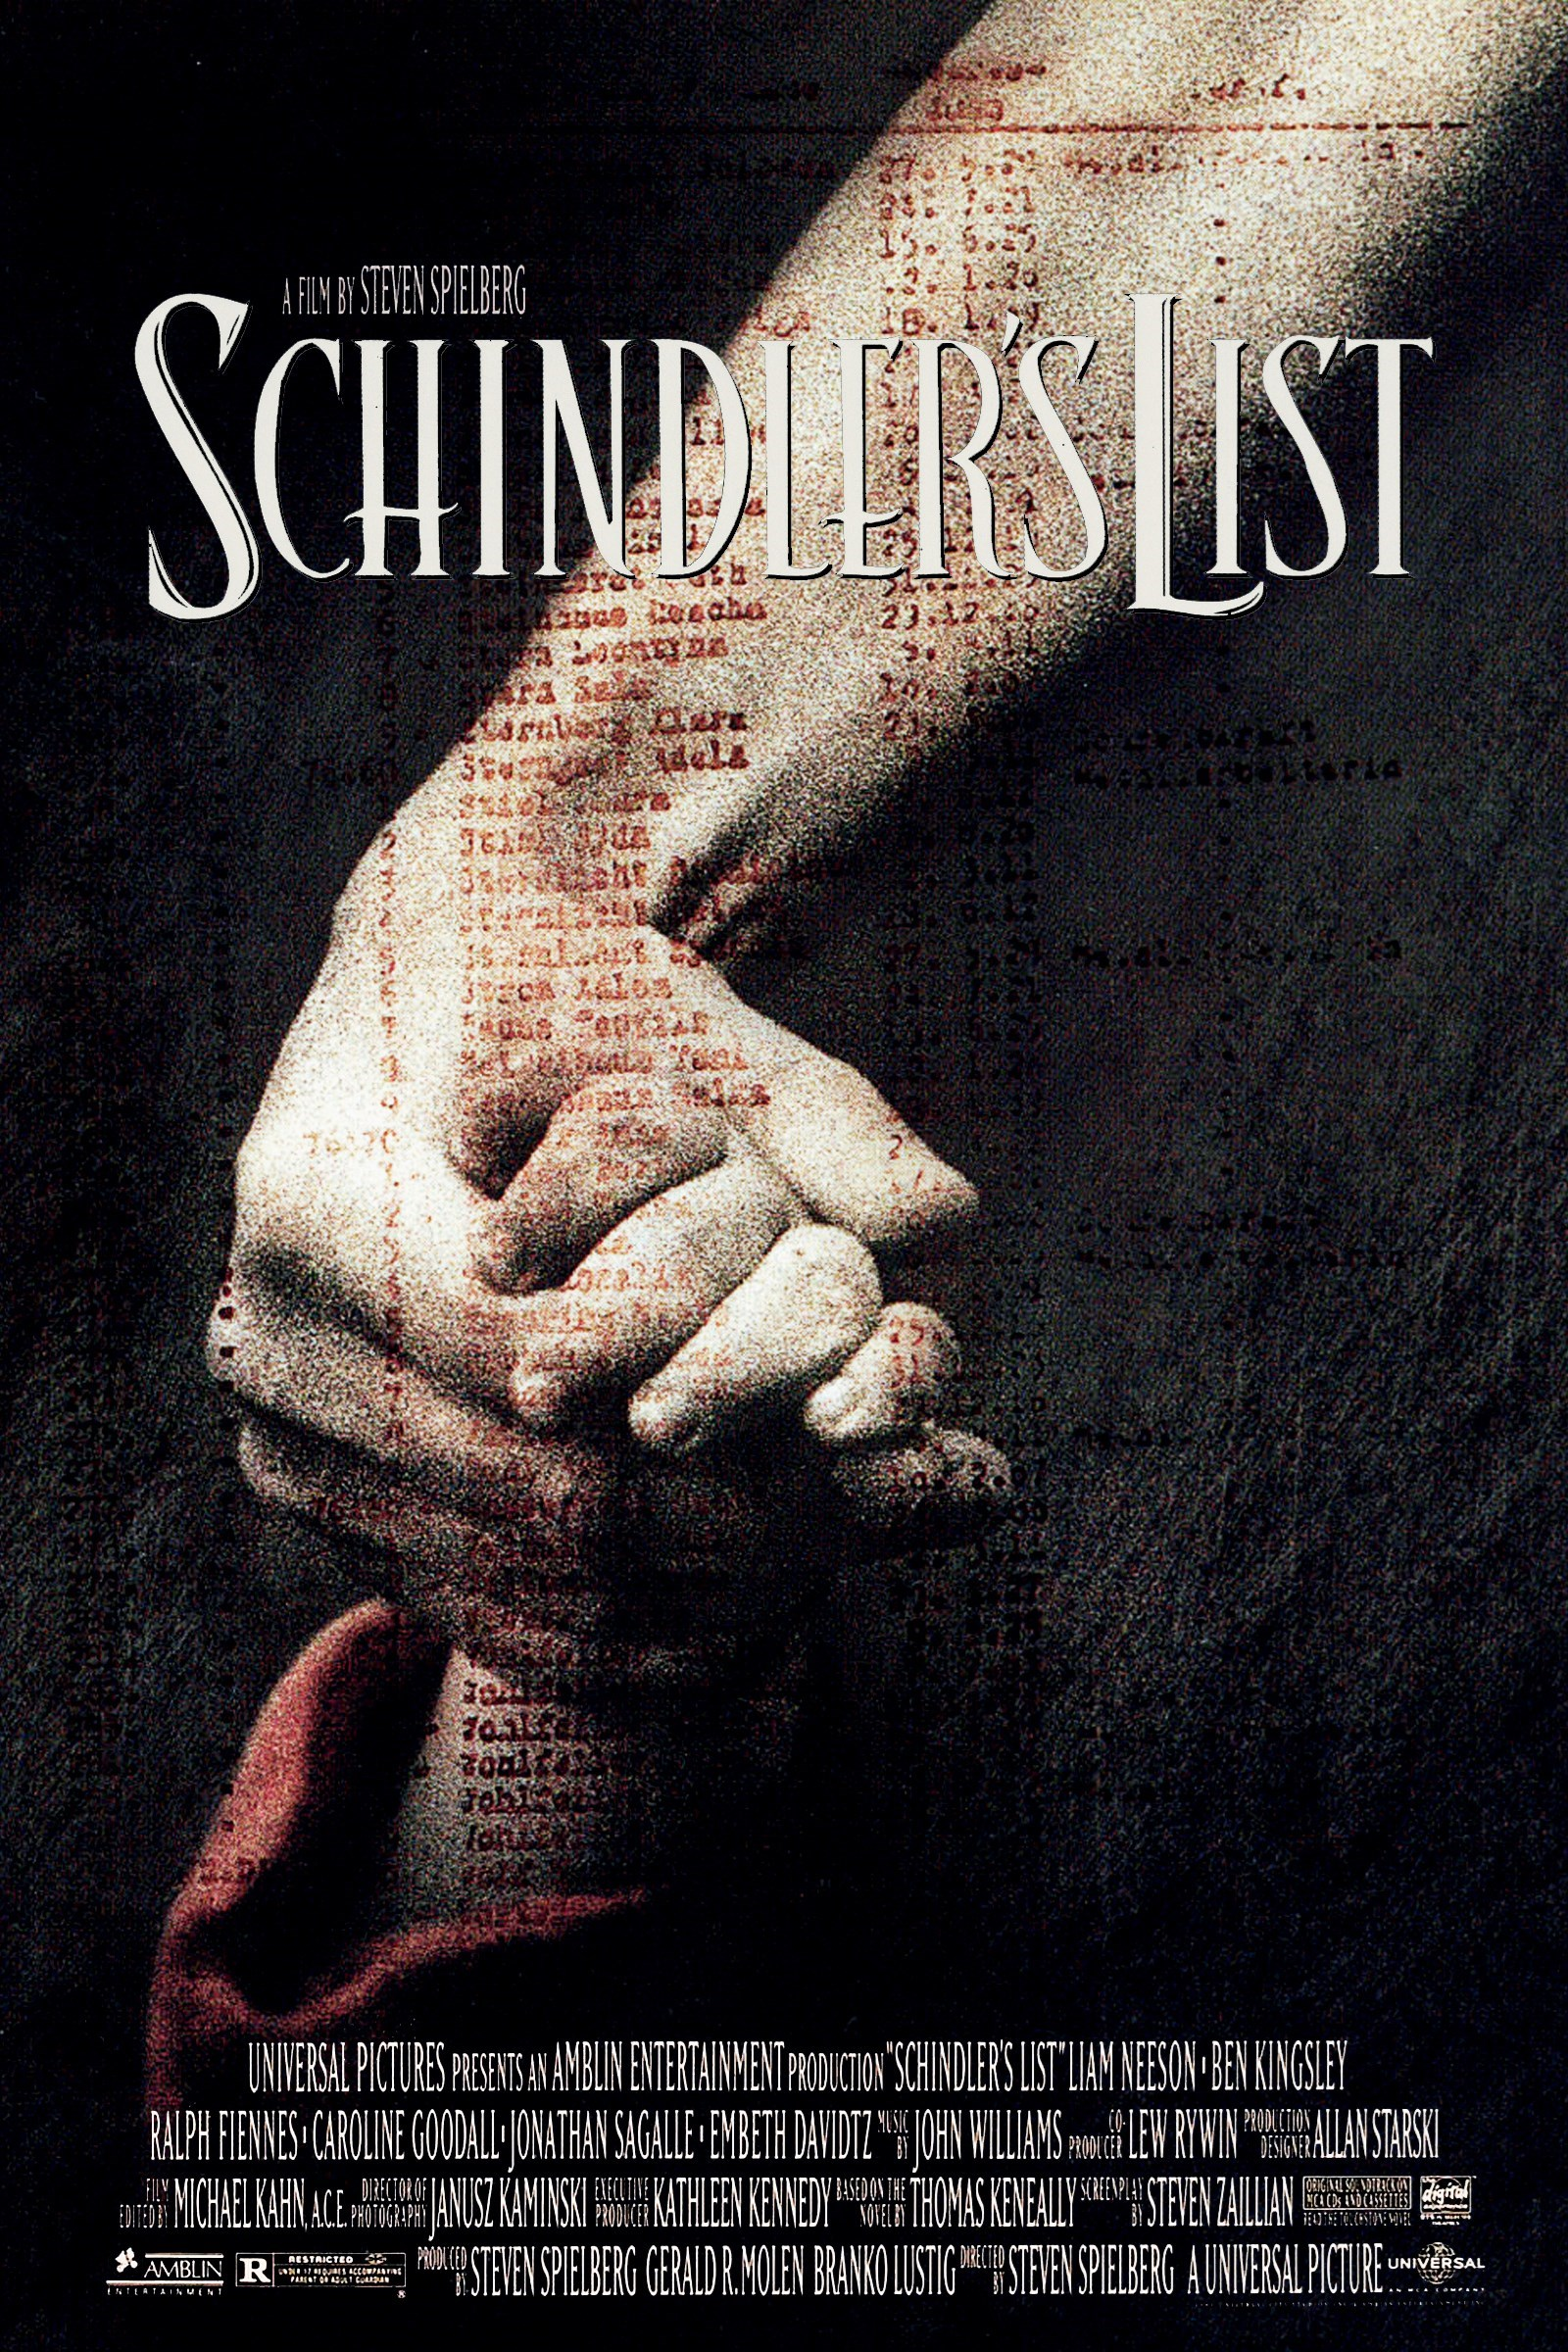 Schindlers.Liste.1993.German.DL.REMASTERED.1080p.BluRay.AVC.RARFiX-AVCiHD